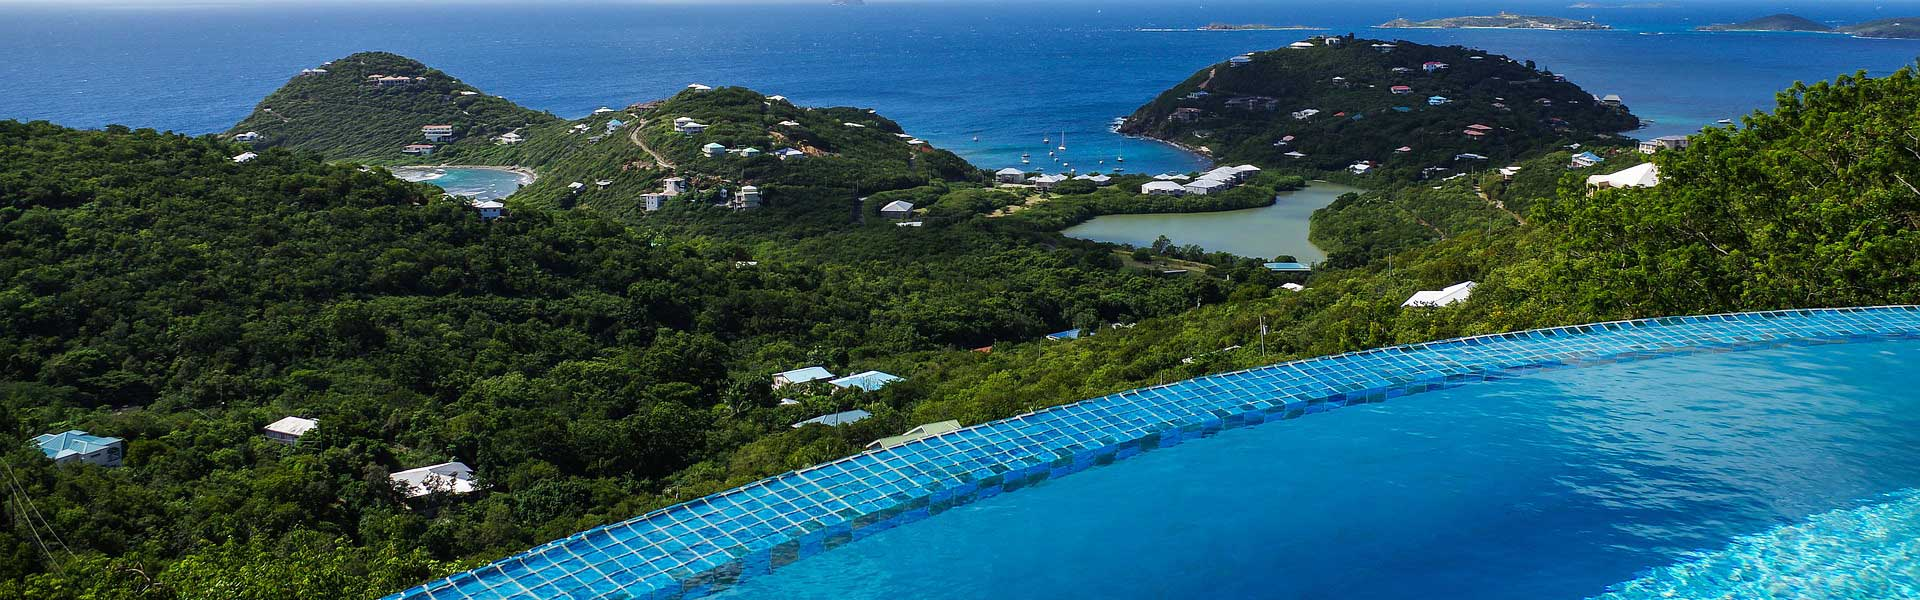 15 of the coolest hotels in the world - shows infinity pool